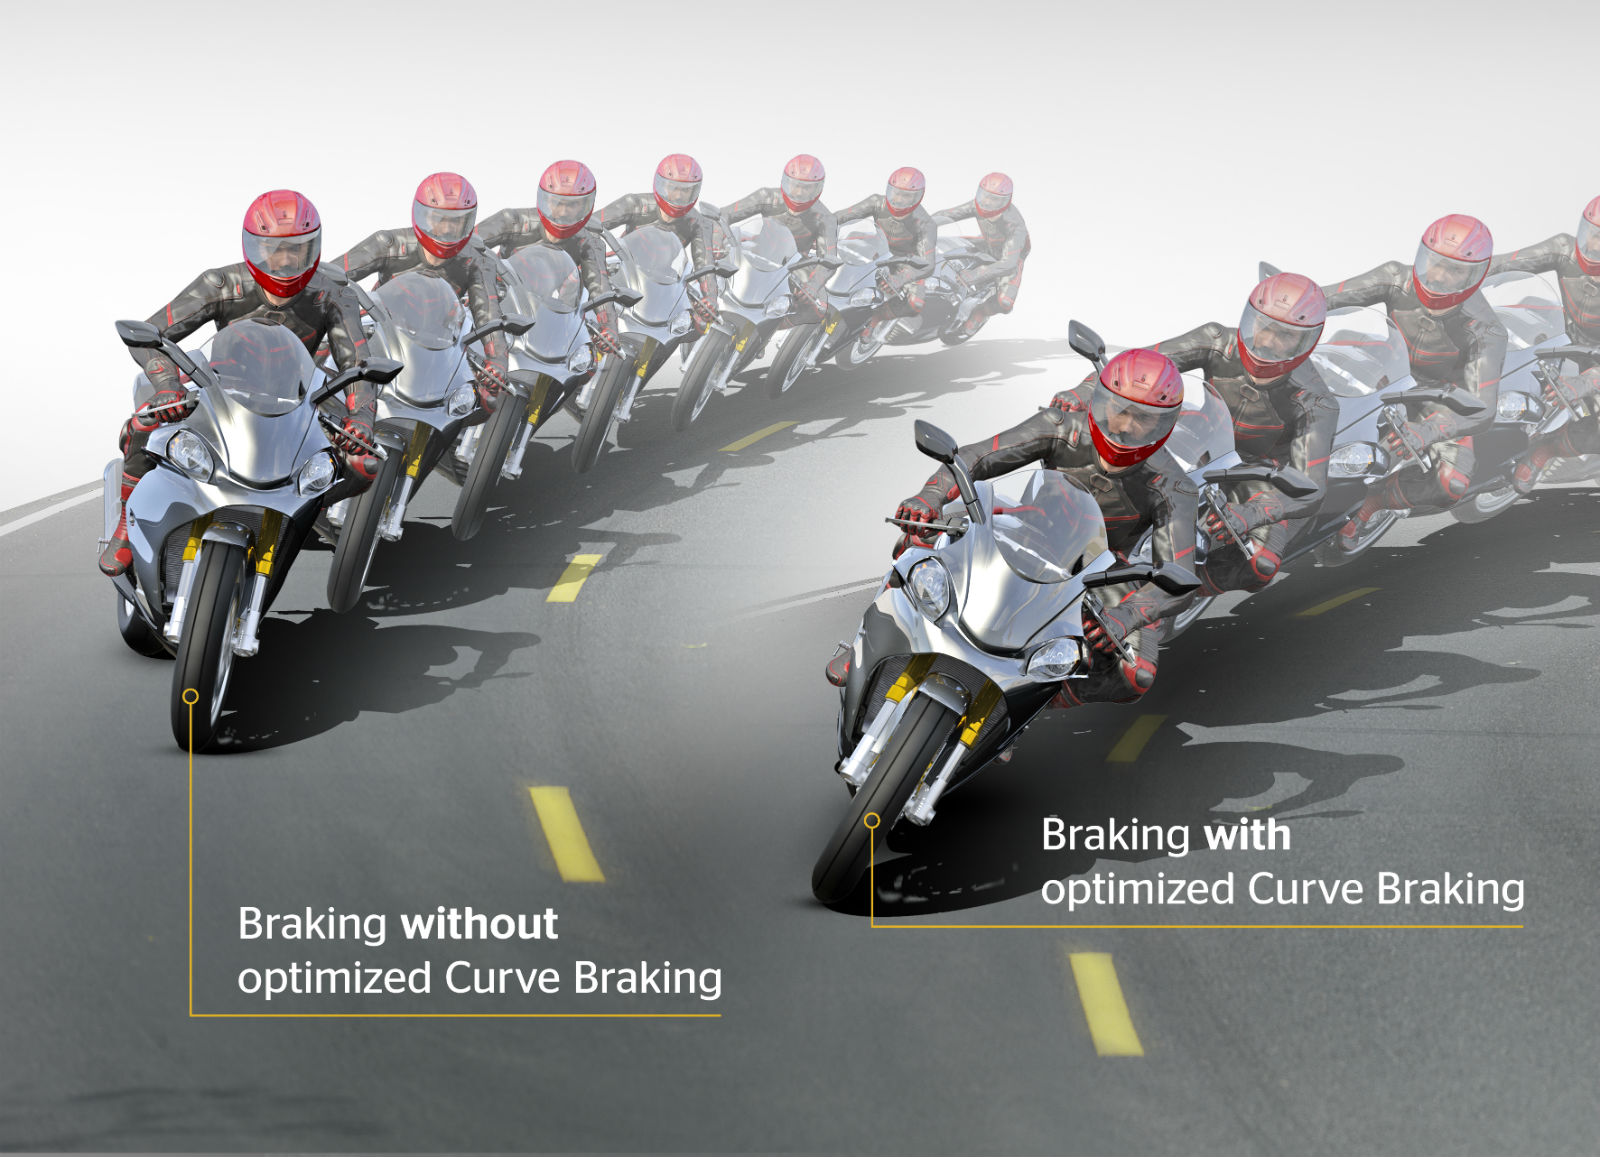 Continental develops cornering ABS for motorcycles